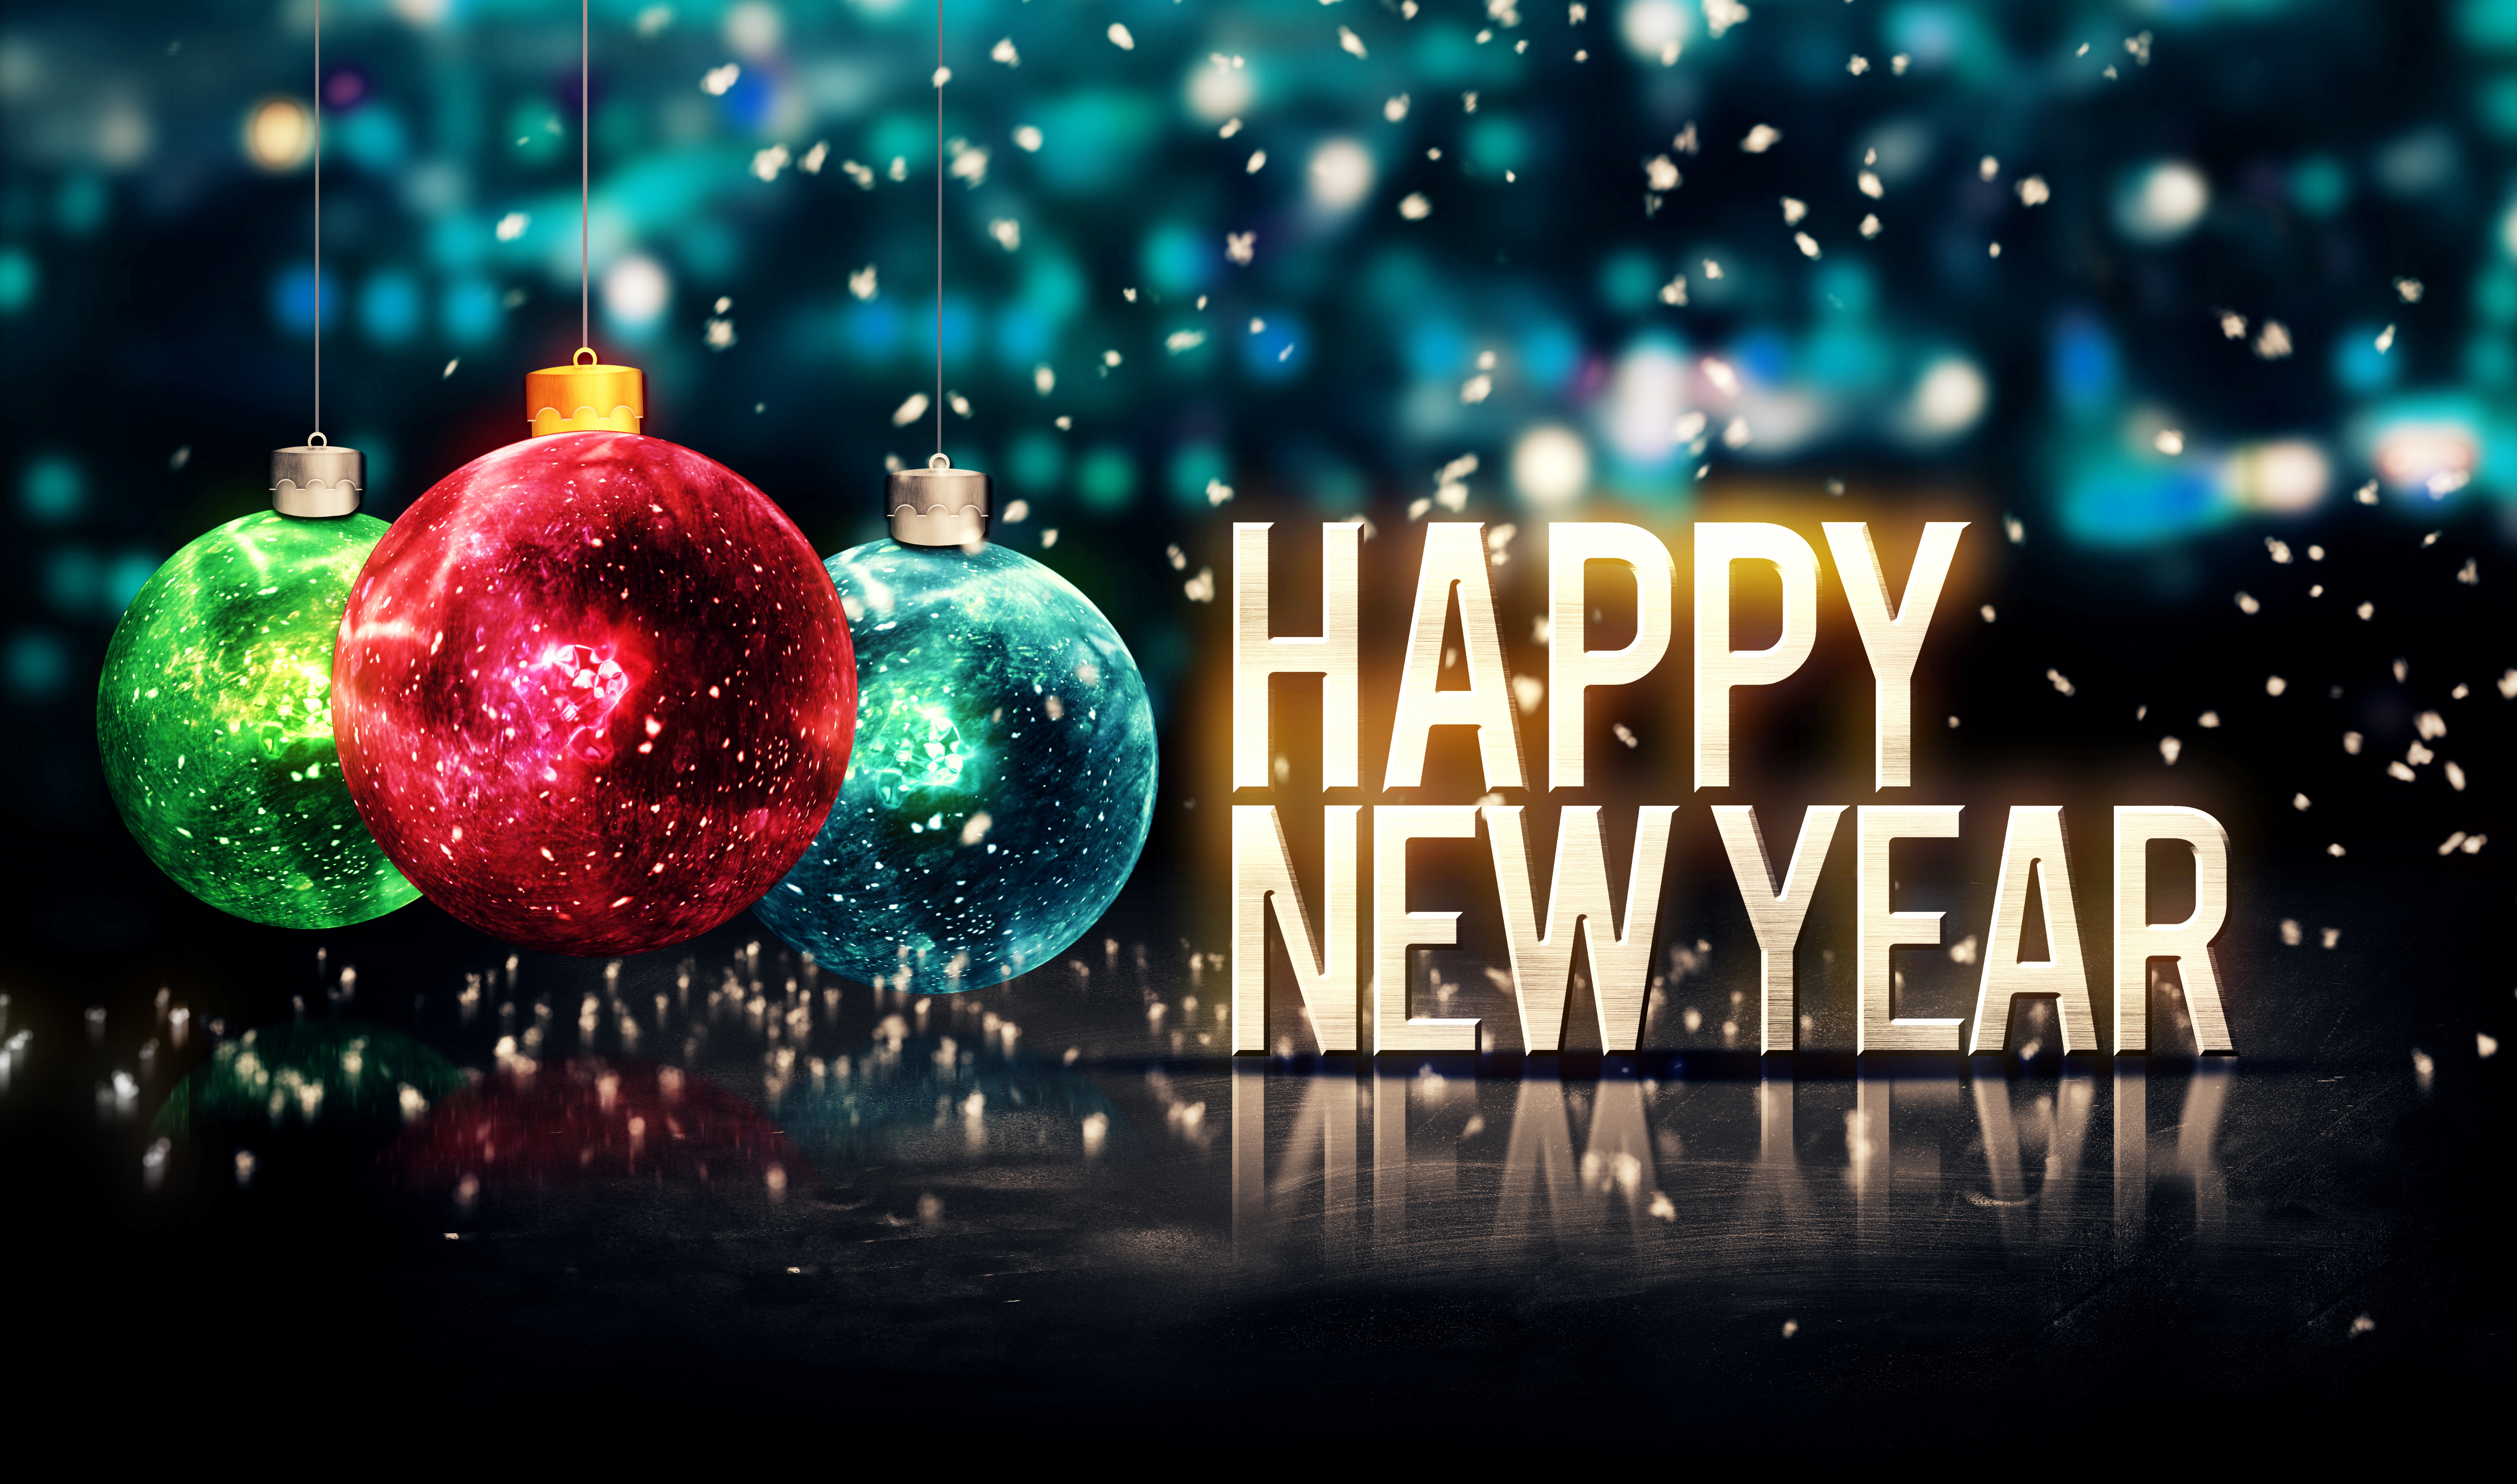 Happy New Year 2016 Wallpapers